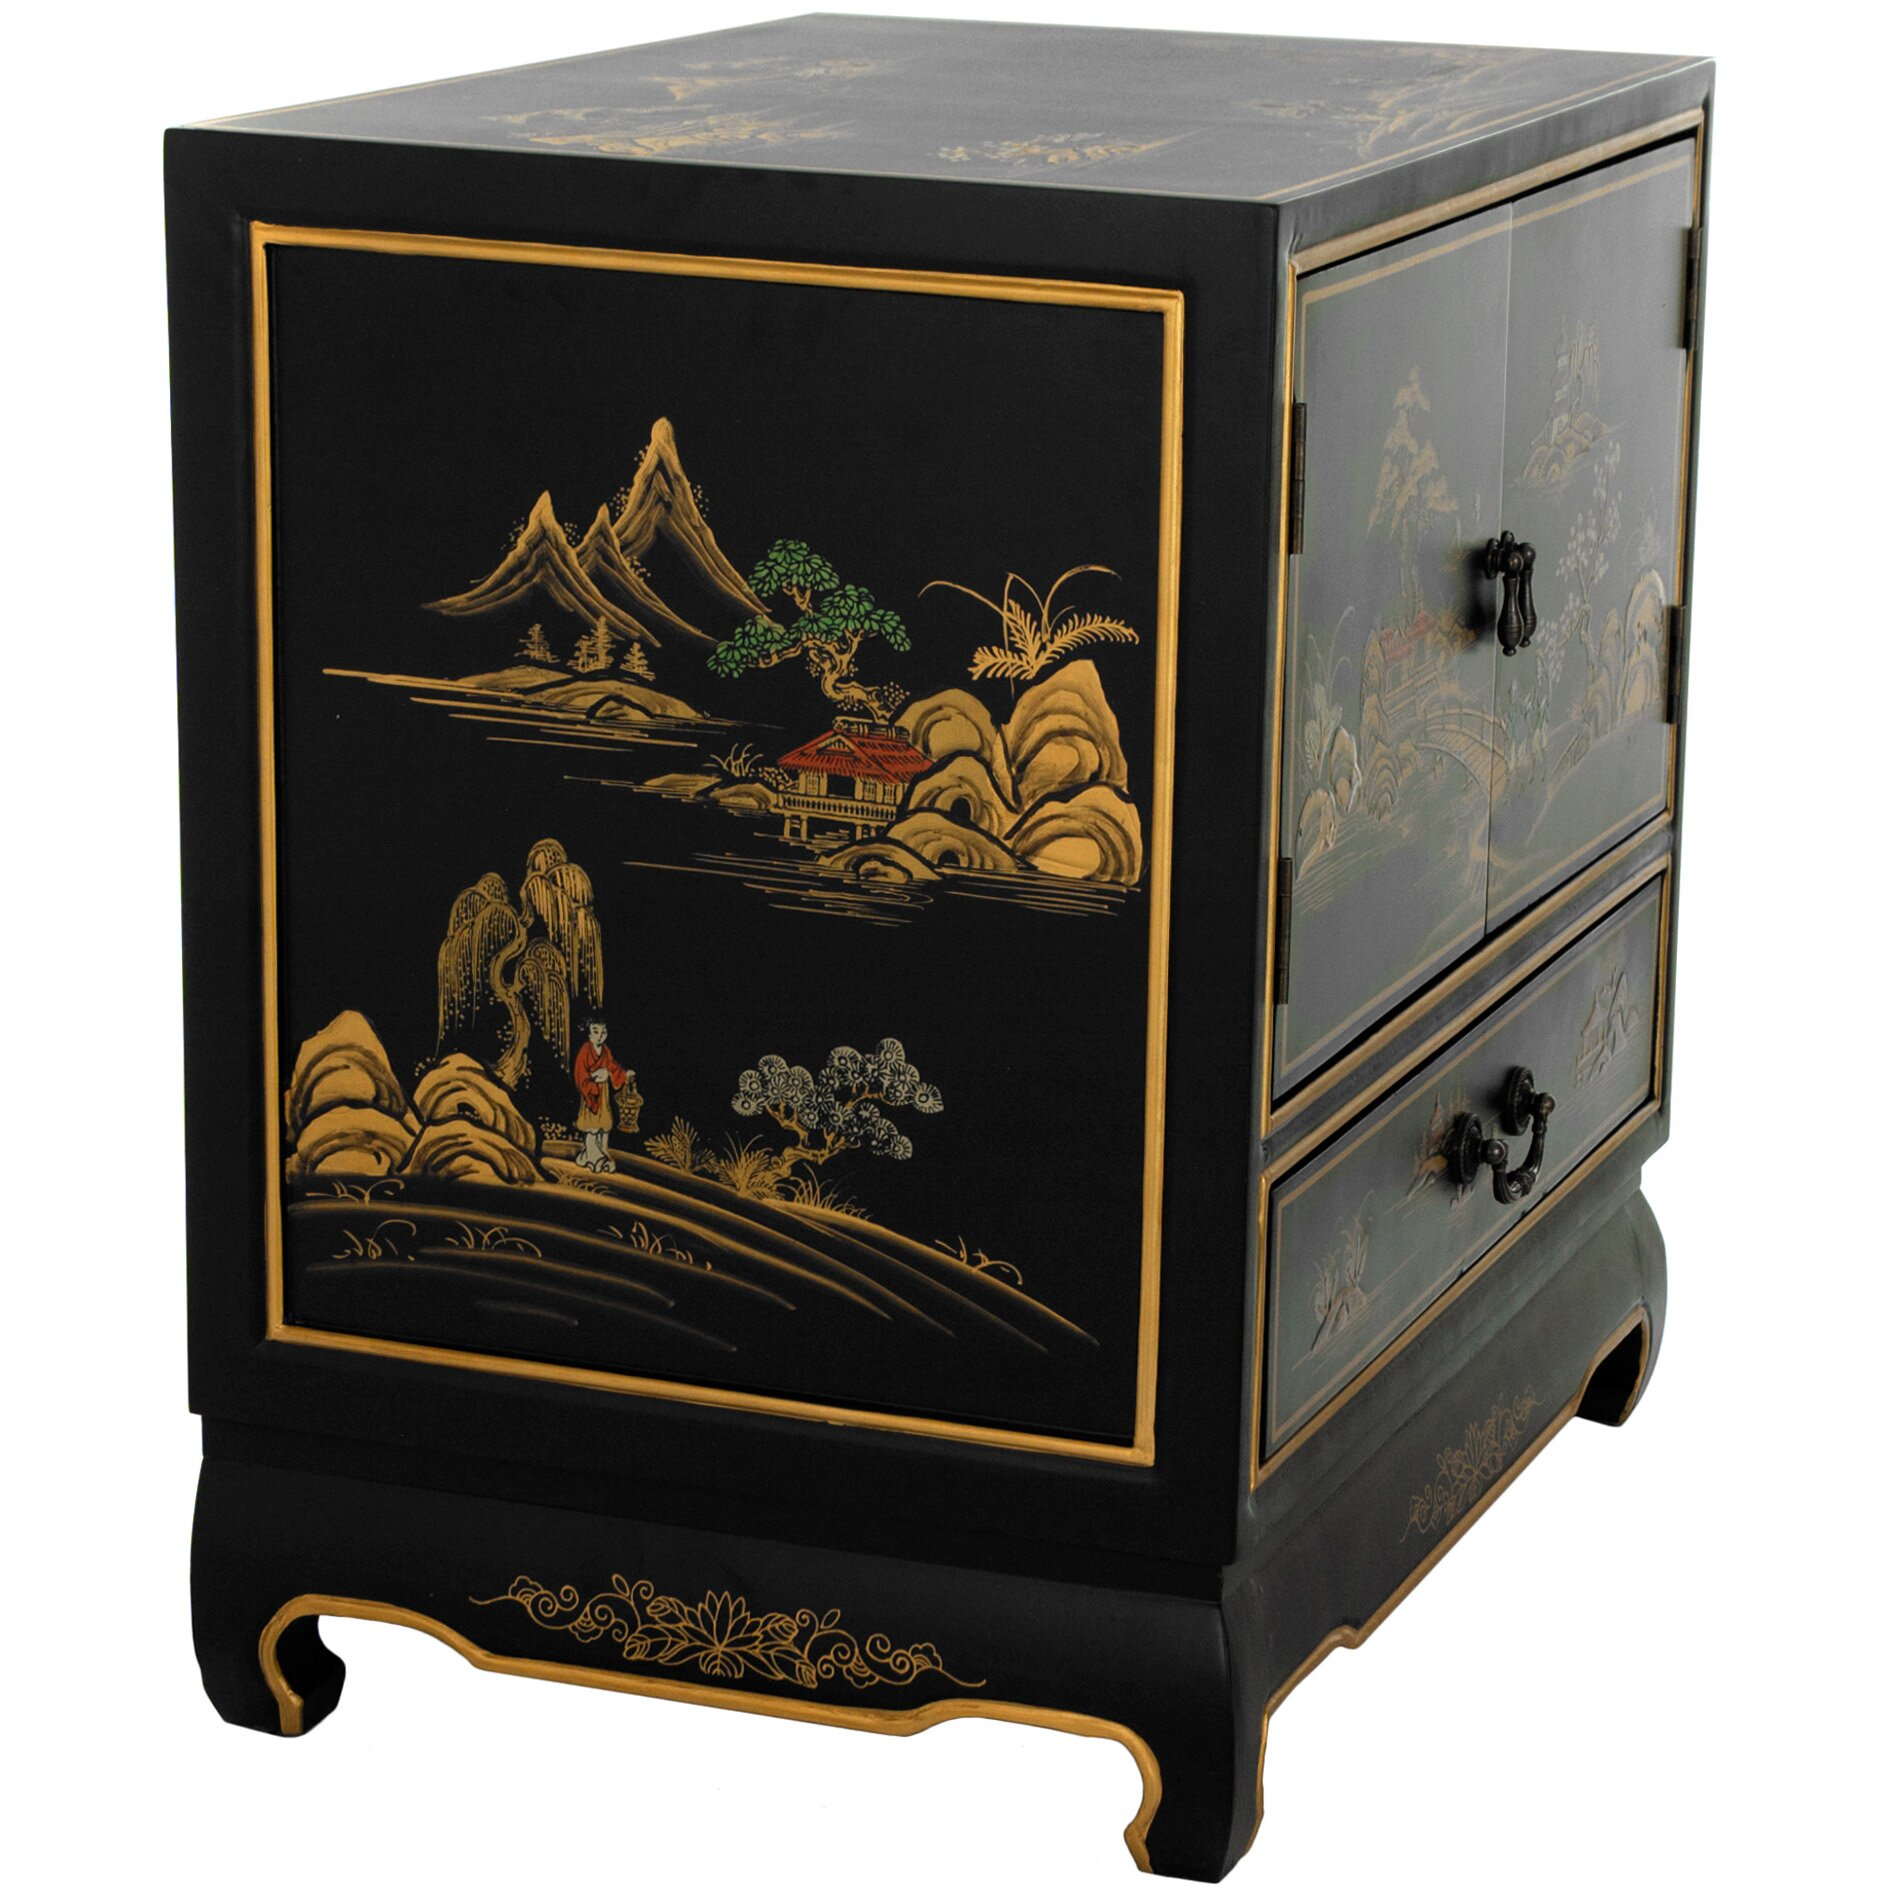 Oriental furniture 1 drawer nightstand reviews for Asian furniture emeryville ca